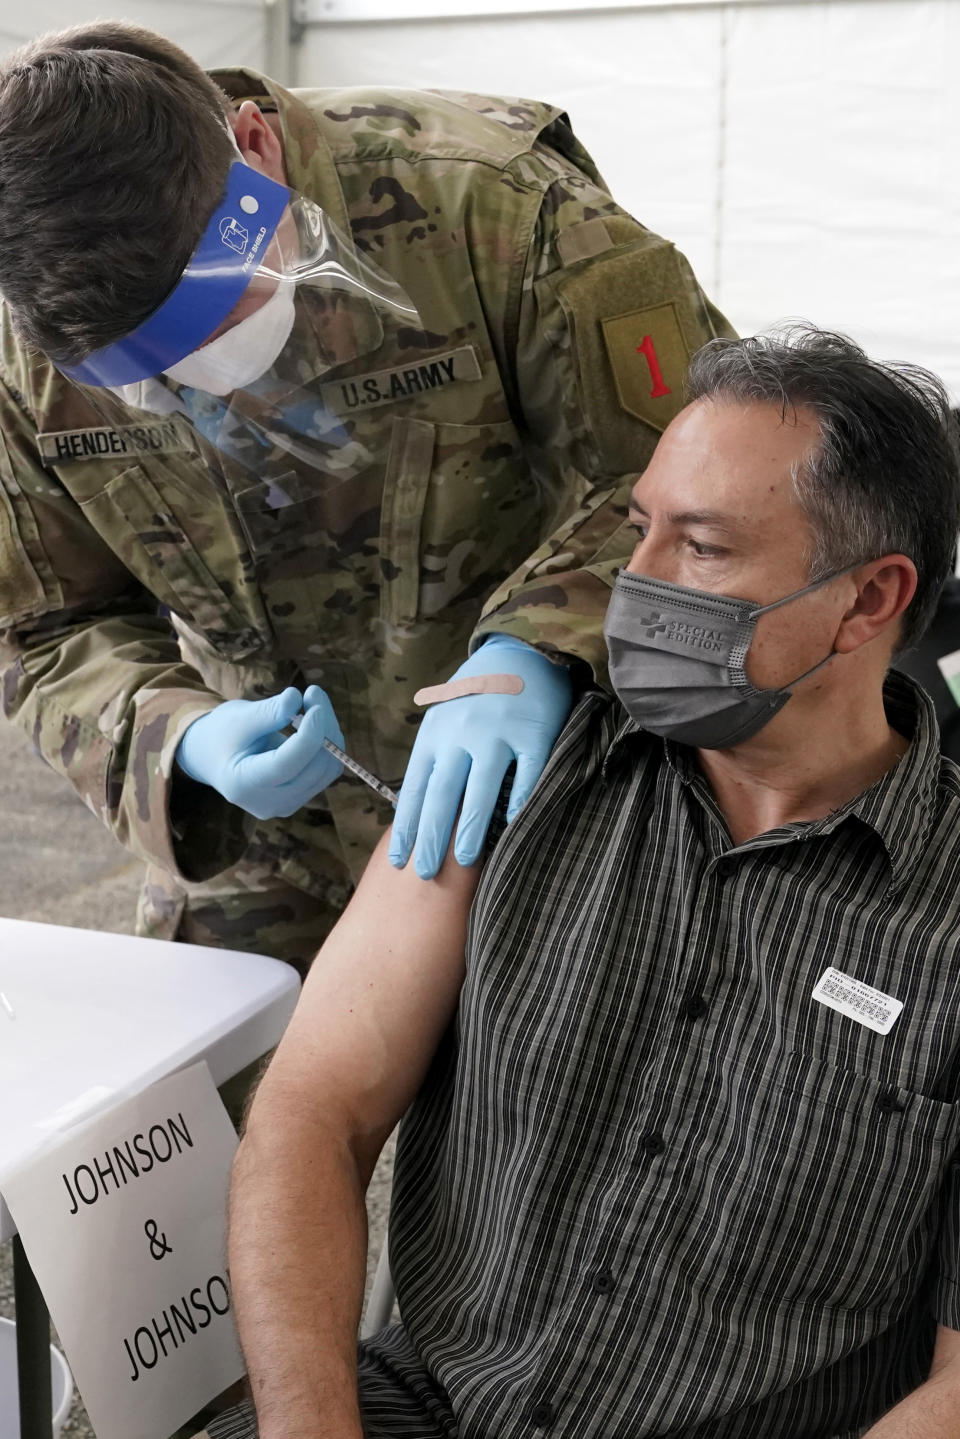 Armelio Acosta receives the Johnson & Johnson COVID-19 vaccine at a FEMA mass vaccination center at Miami Dade College, Wednesday, March 3, 2021, in North Miami, Fla. This is one of four FEMA sites in Florida that opened Wednesday with capacity to vaccinate up to 3,000 people a day seven days a week. (AP Photo/Marta Lavandier)